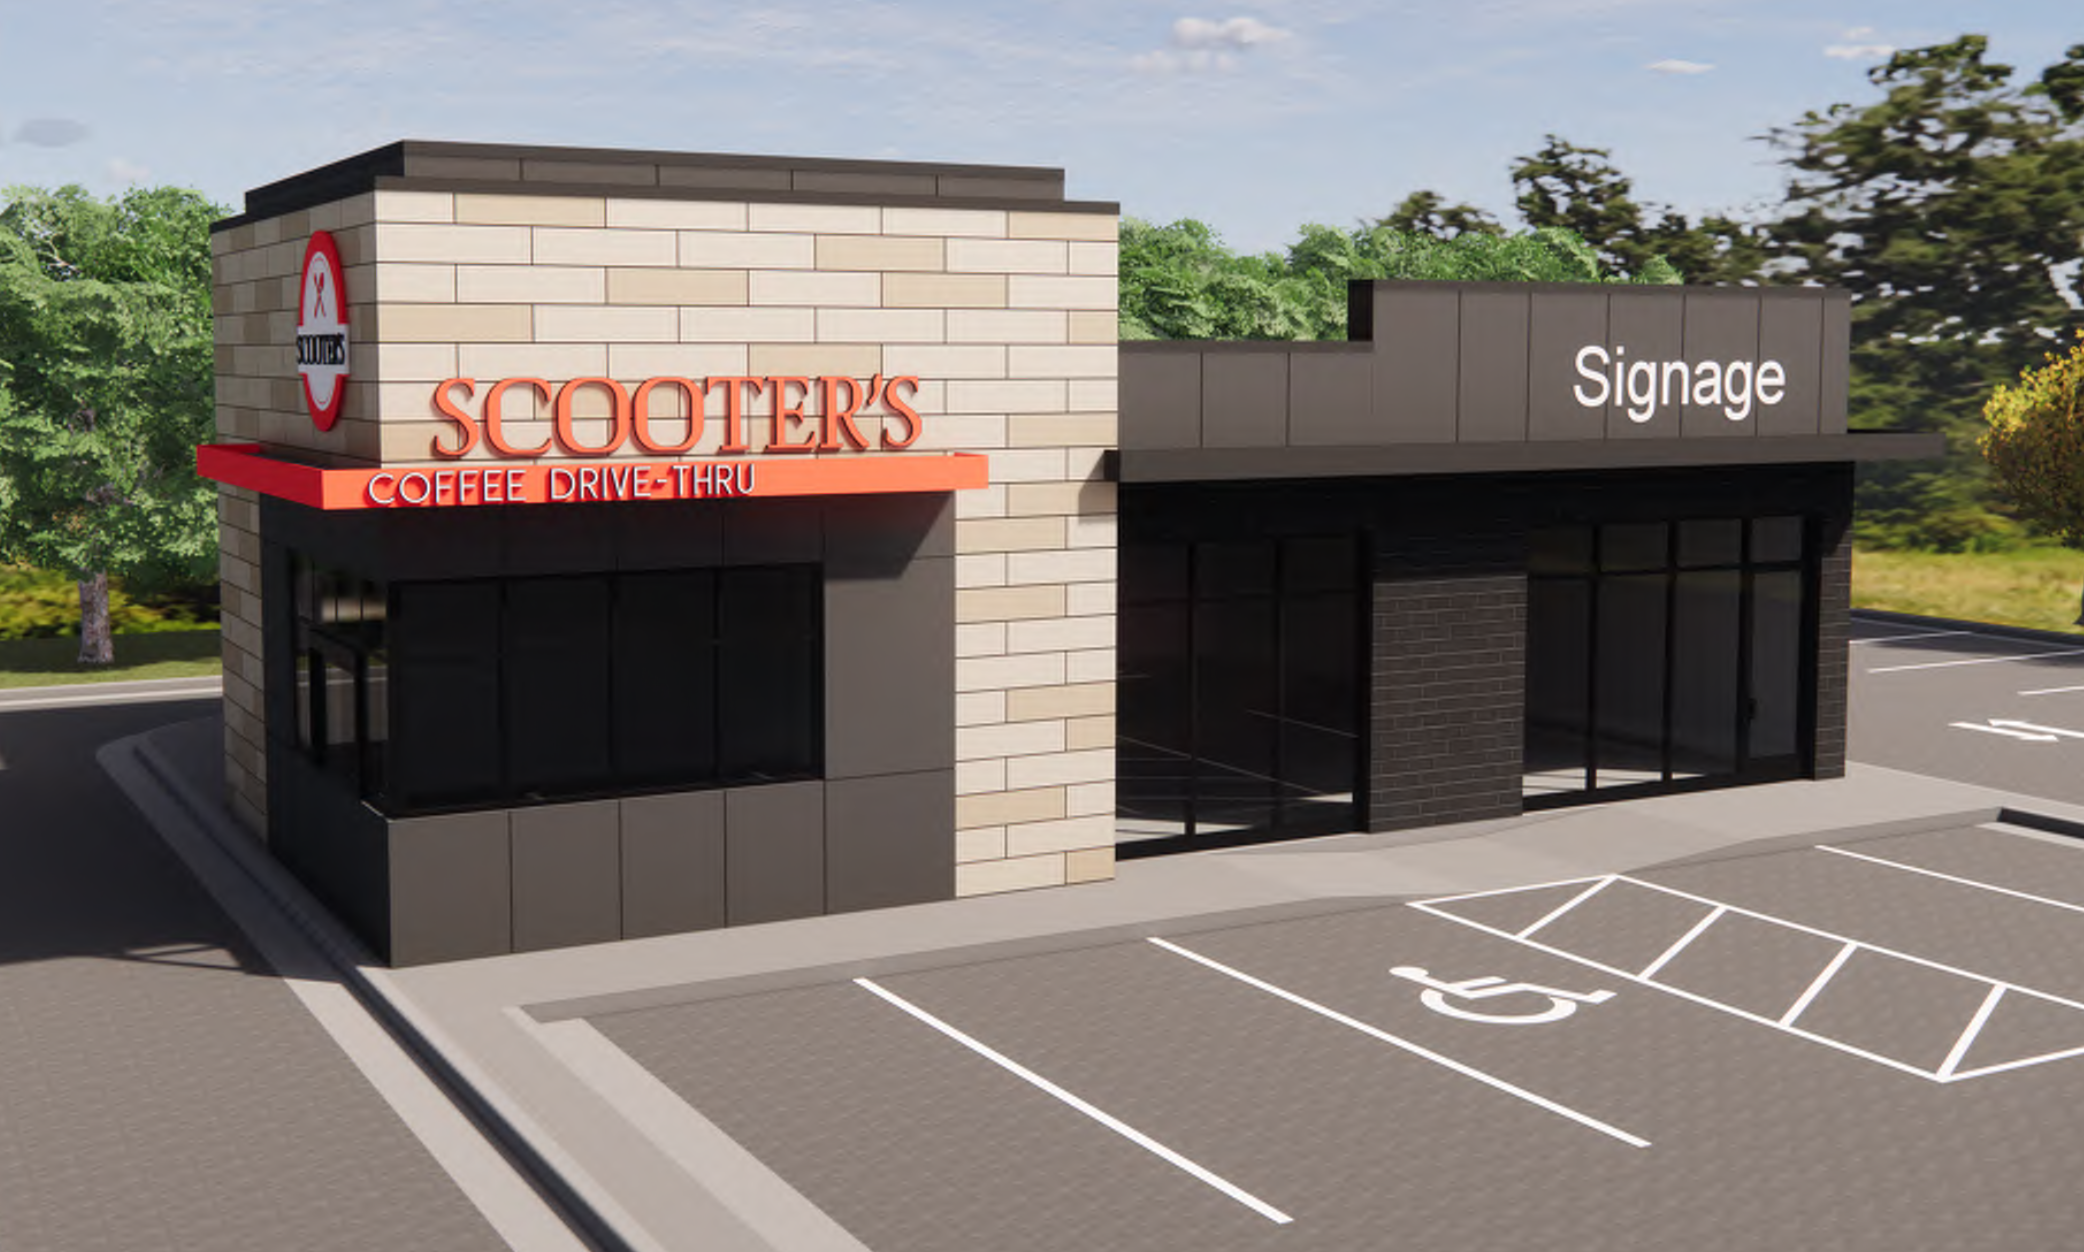 New 12th Street Scooter S Coffee Drive Thru Set To Open Spring 2021